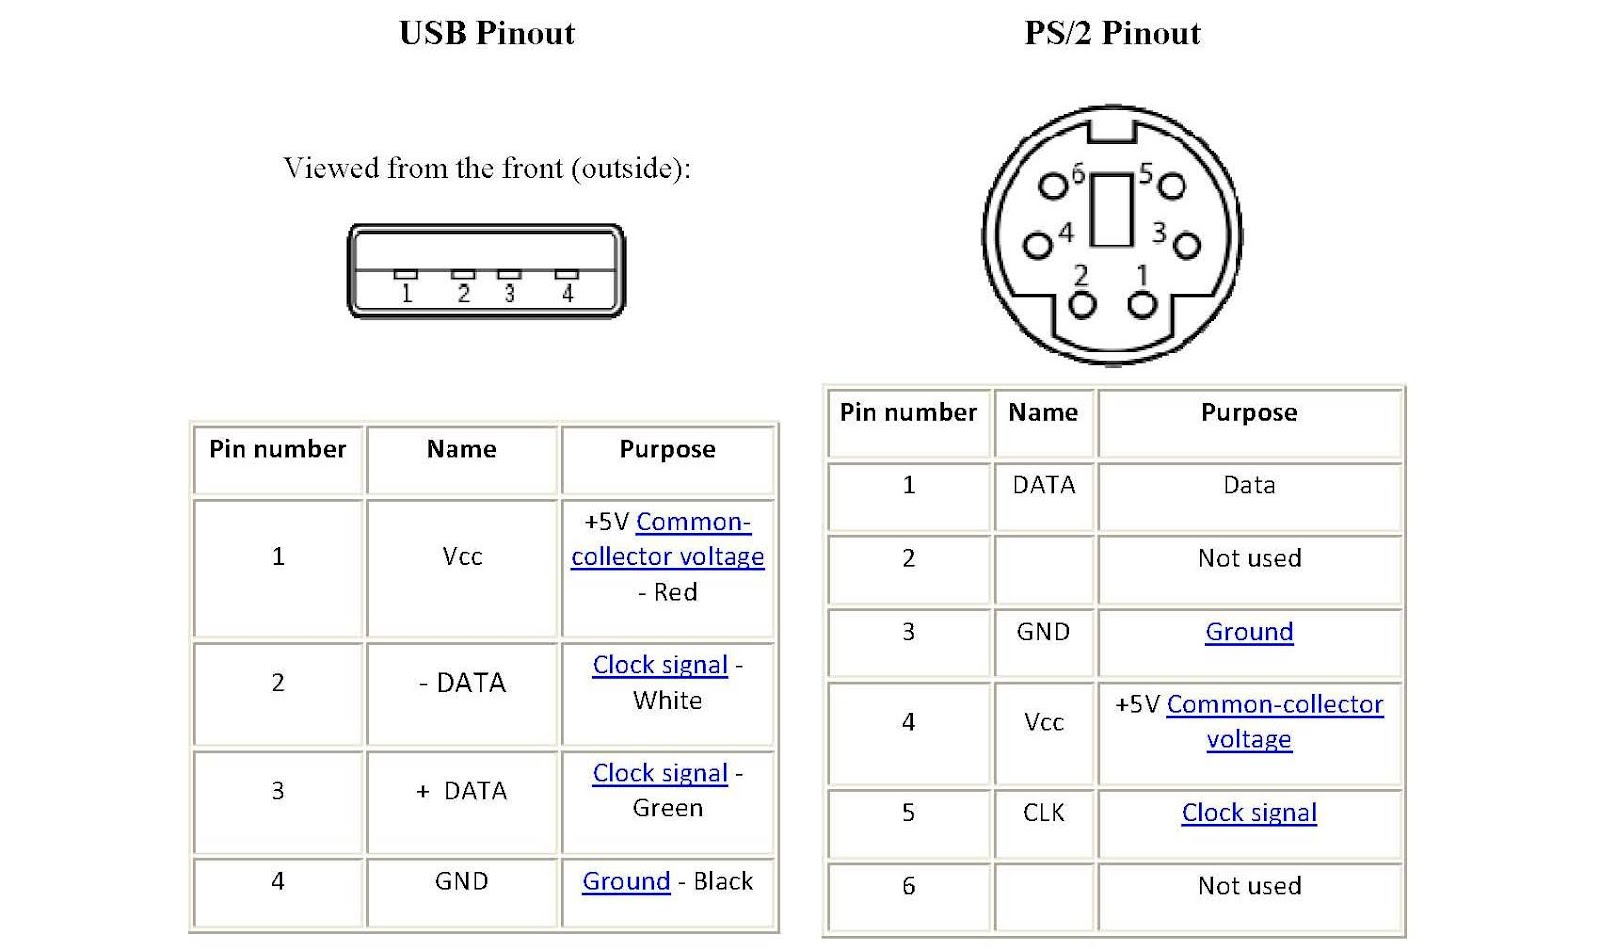 ps 2 keyboard to usb solved computer peripherals rh tomshardware com USB to PS2 Pinout USB Plug Wiring Diagram